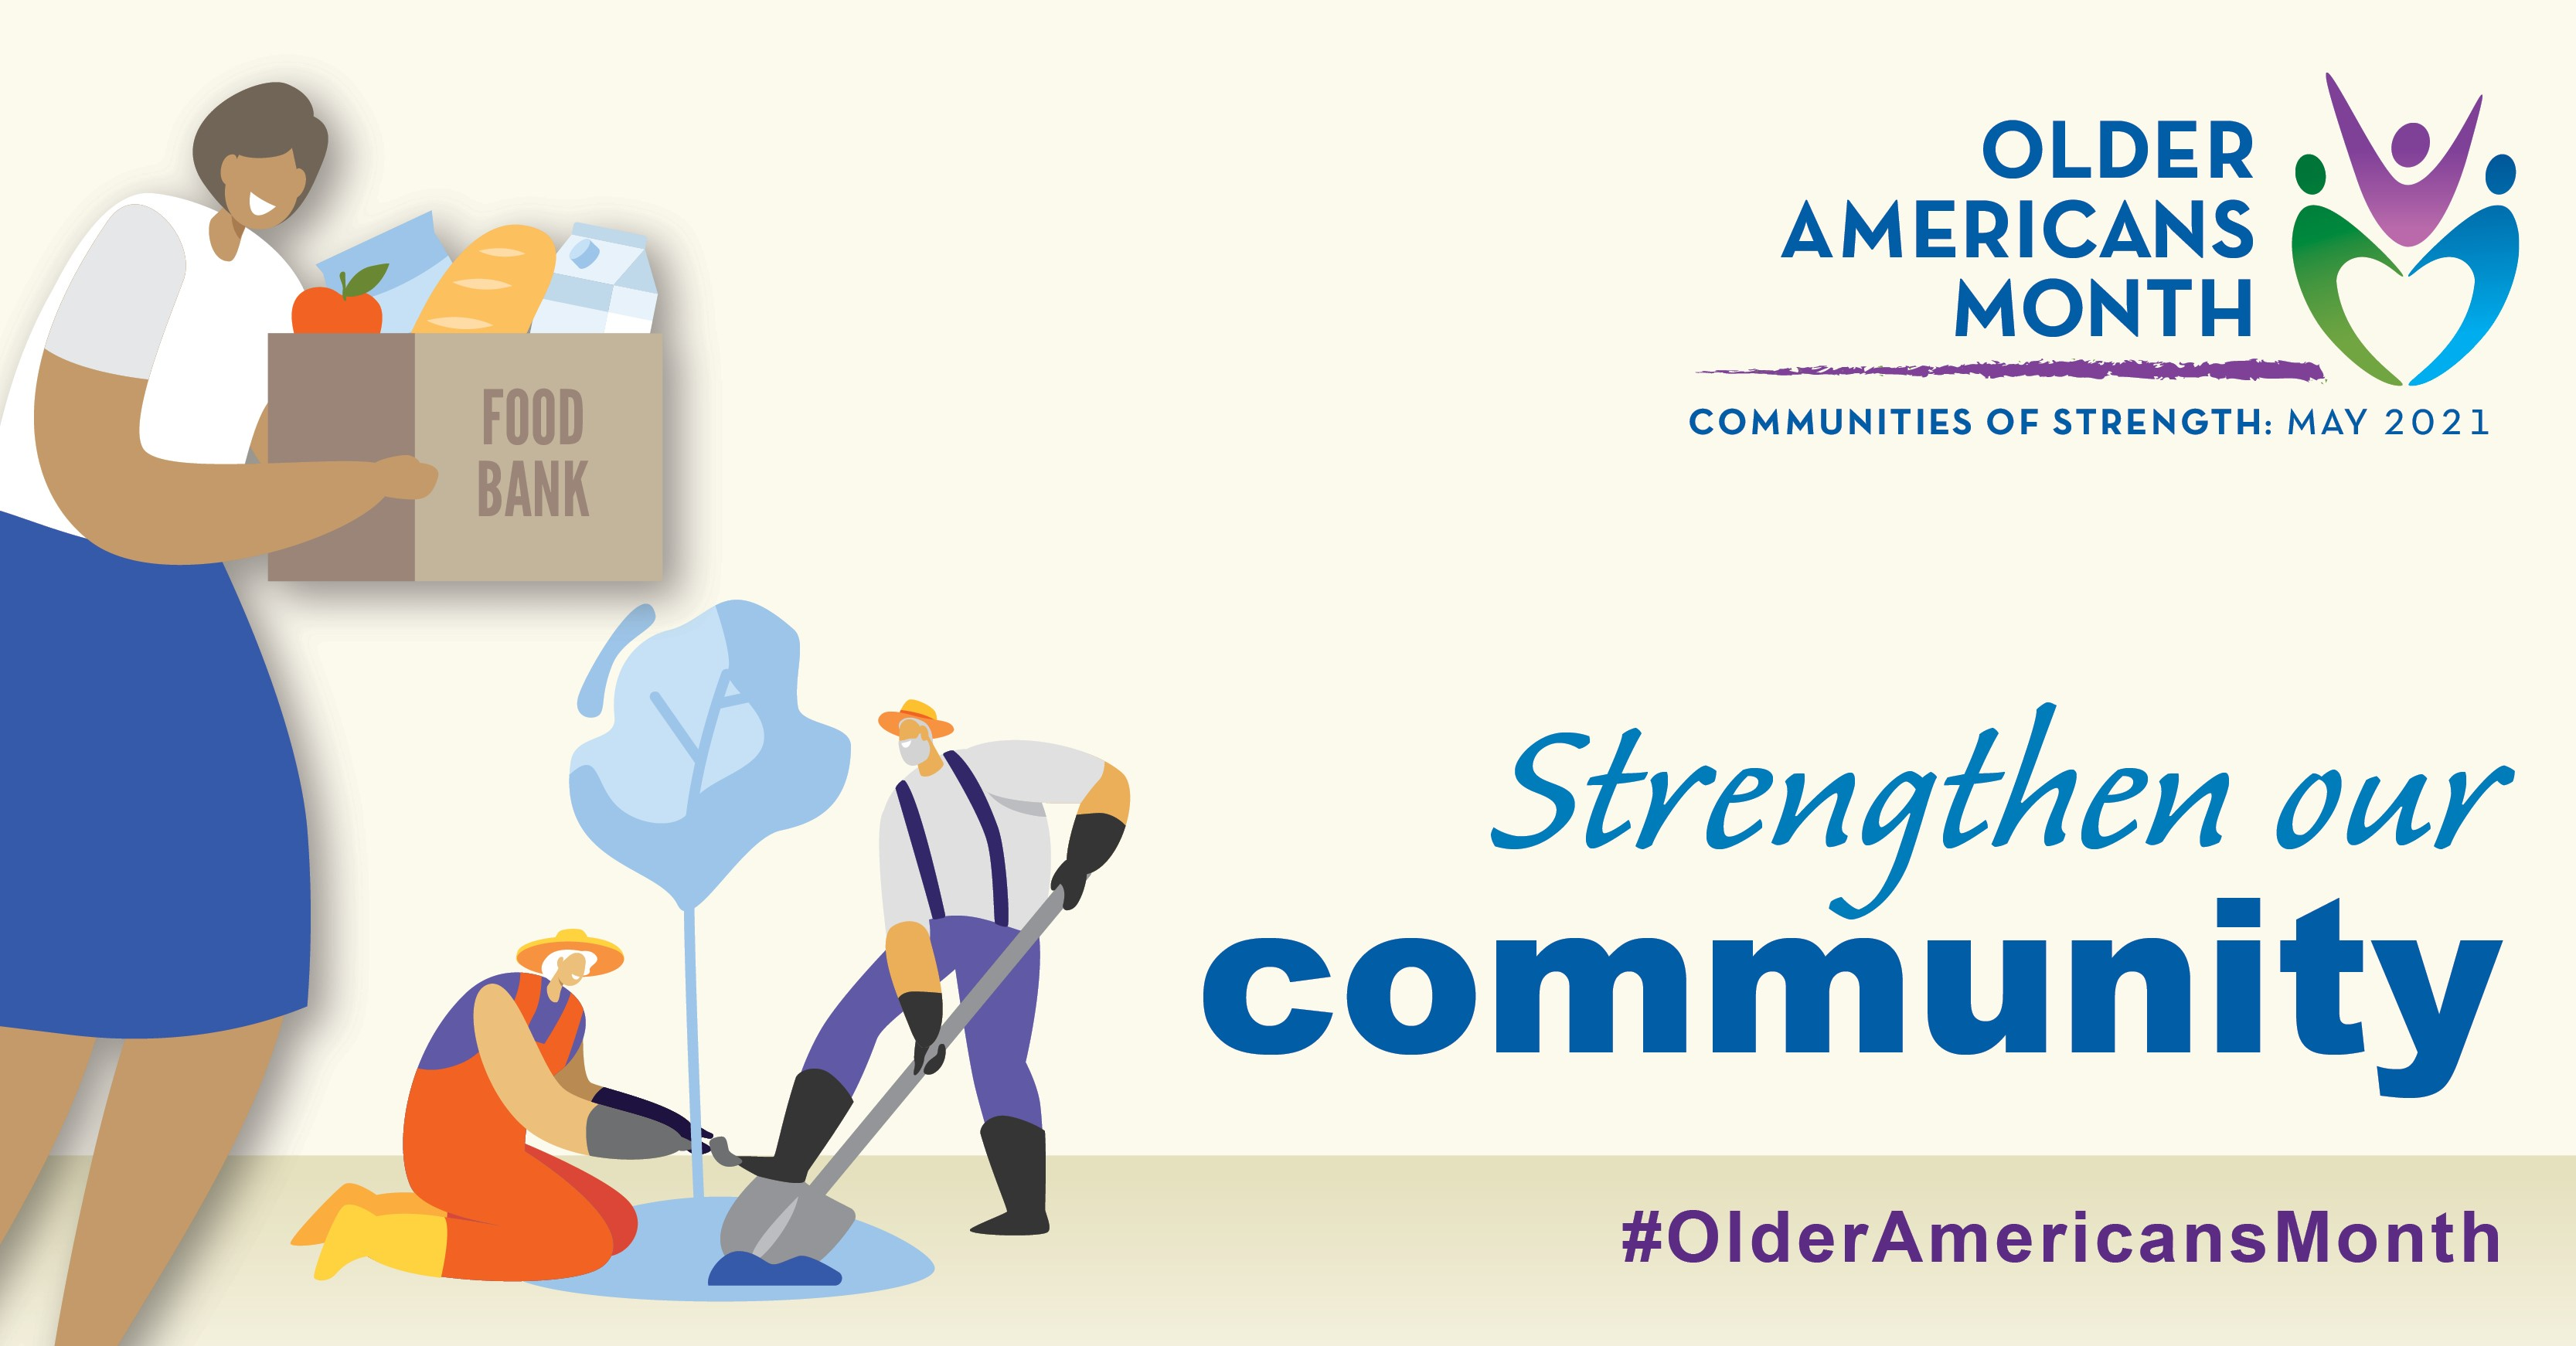 Social Media Graphic: Communities of Strength, Older Americans Month, May 2021. Strengthen Our Community. #OlderAmericansMonth